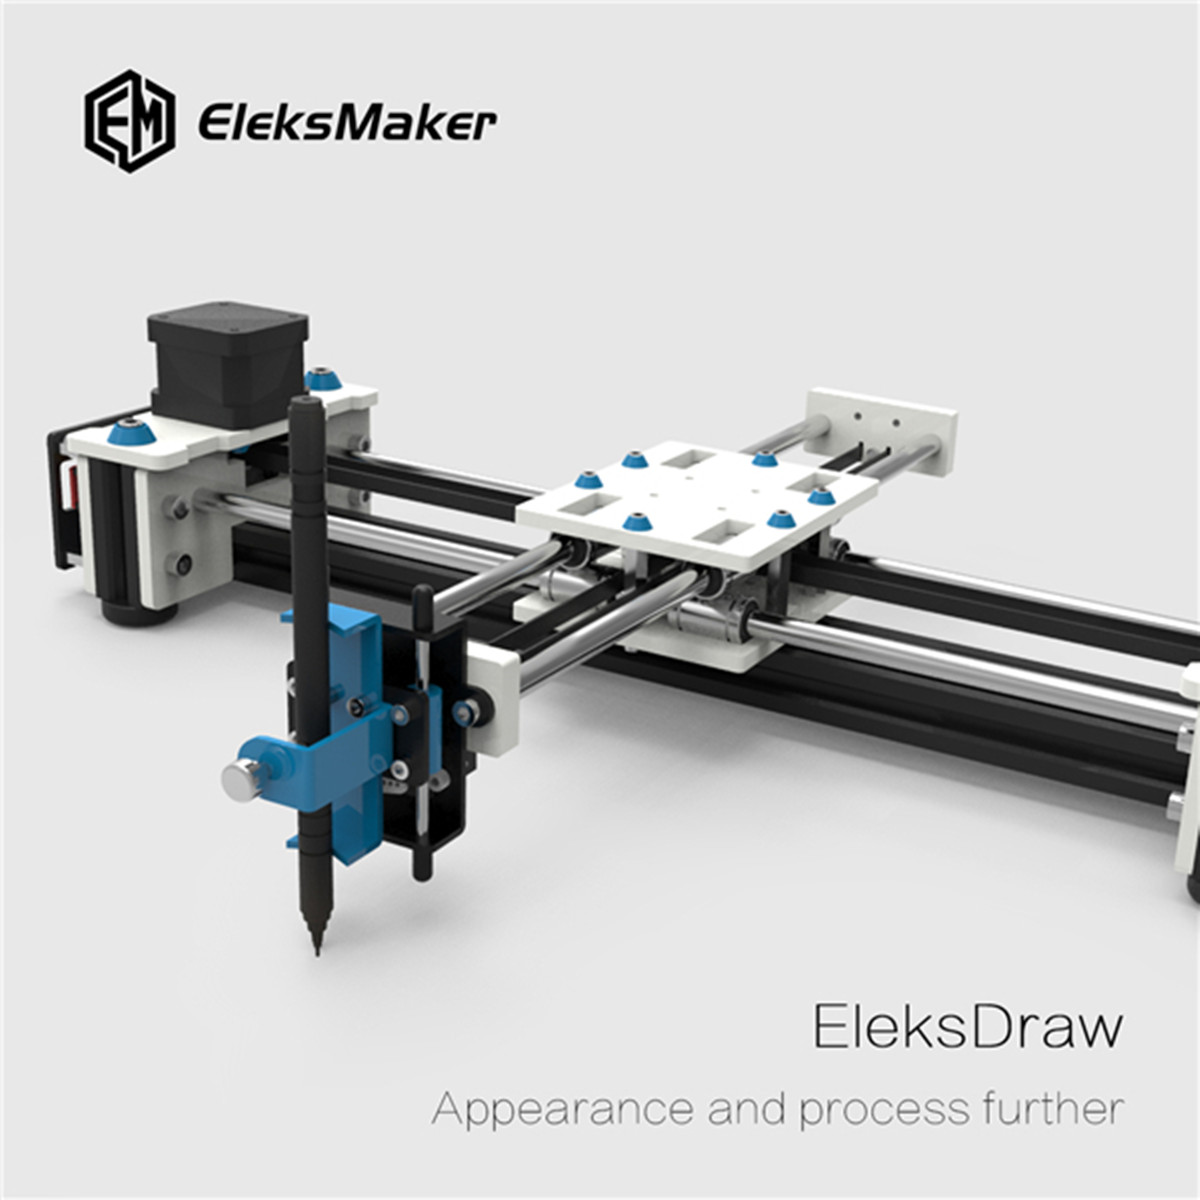 EleksMaker EleksDraw Mini XY 2 Axis CNC Pen Plotter DIY Laser Drawing Machine(China)